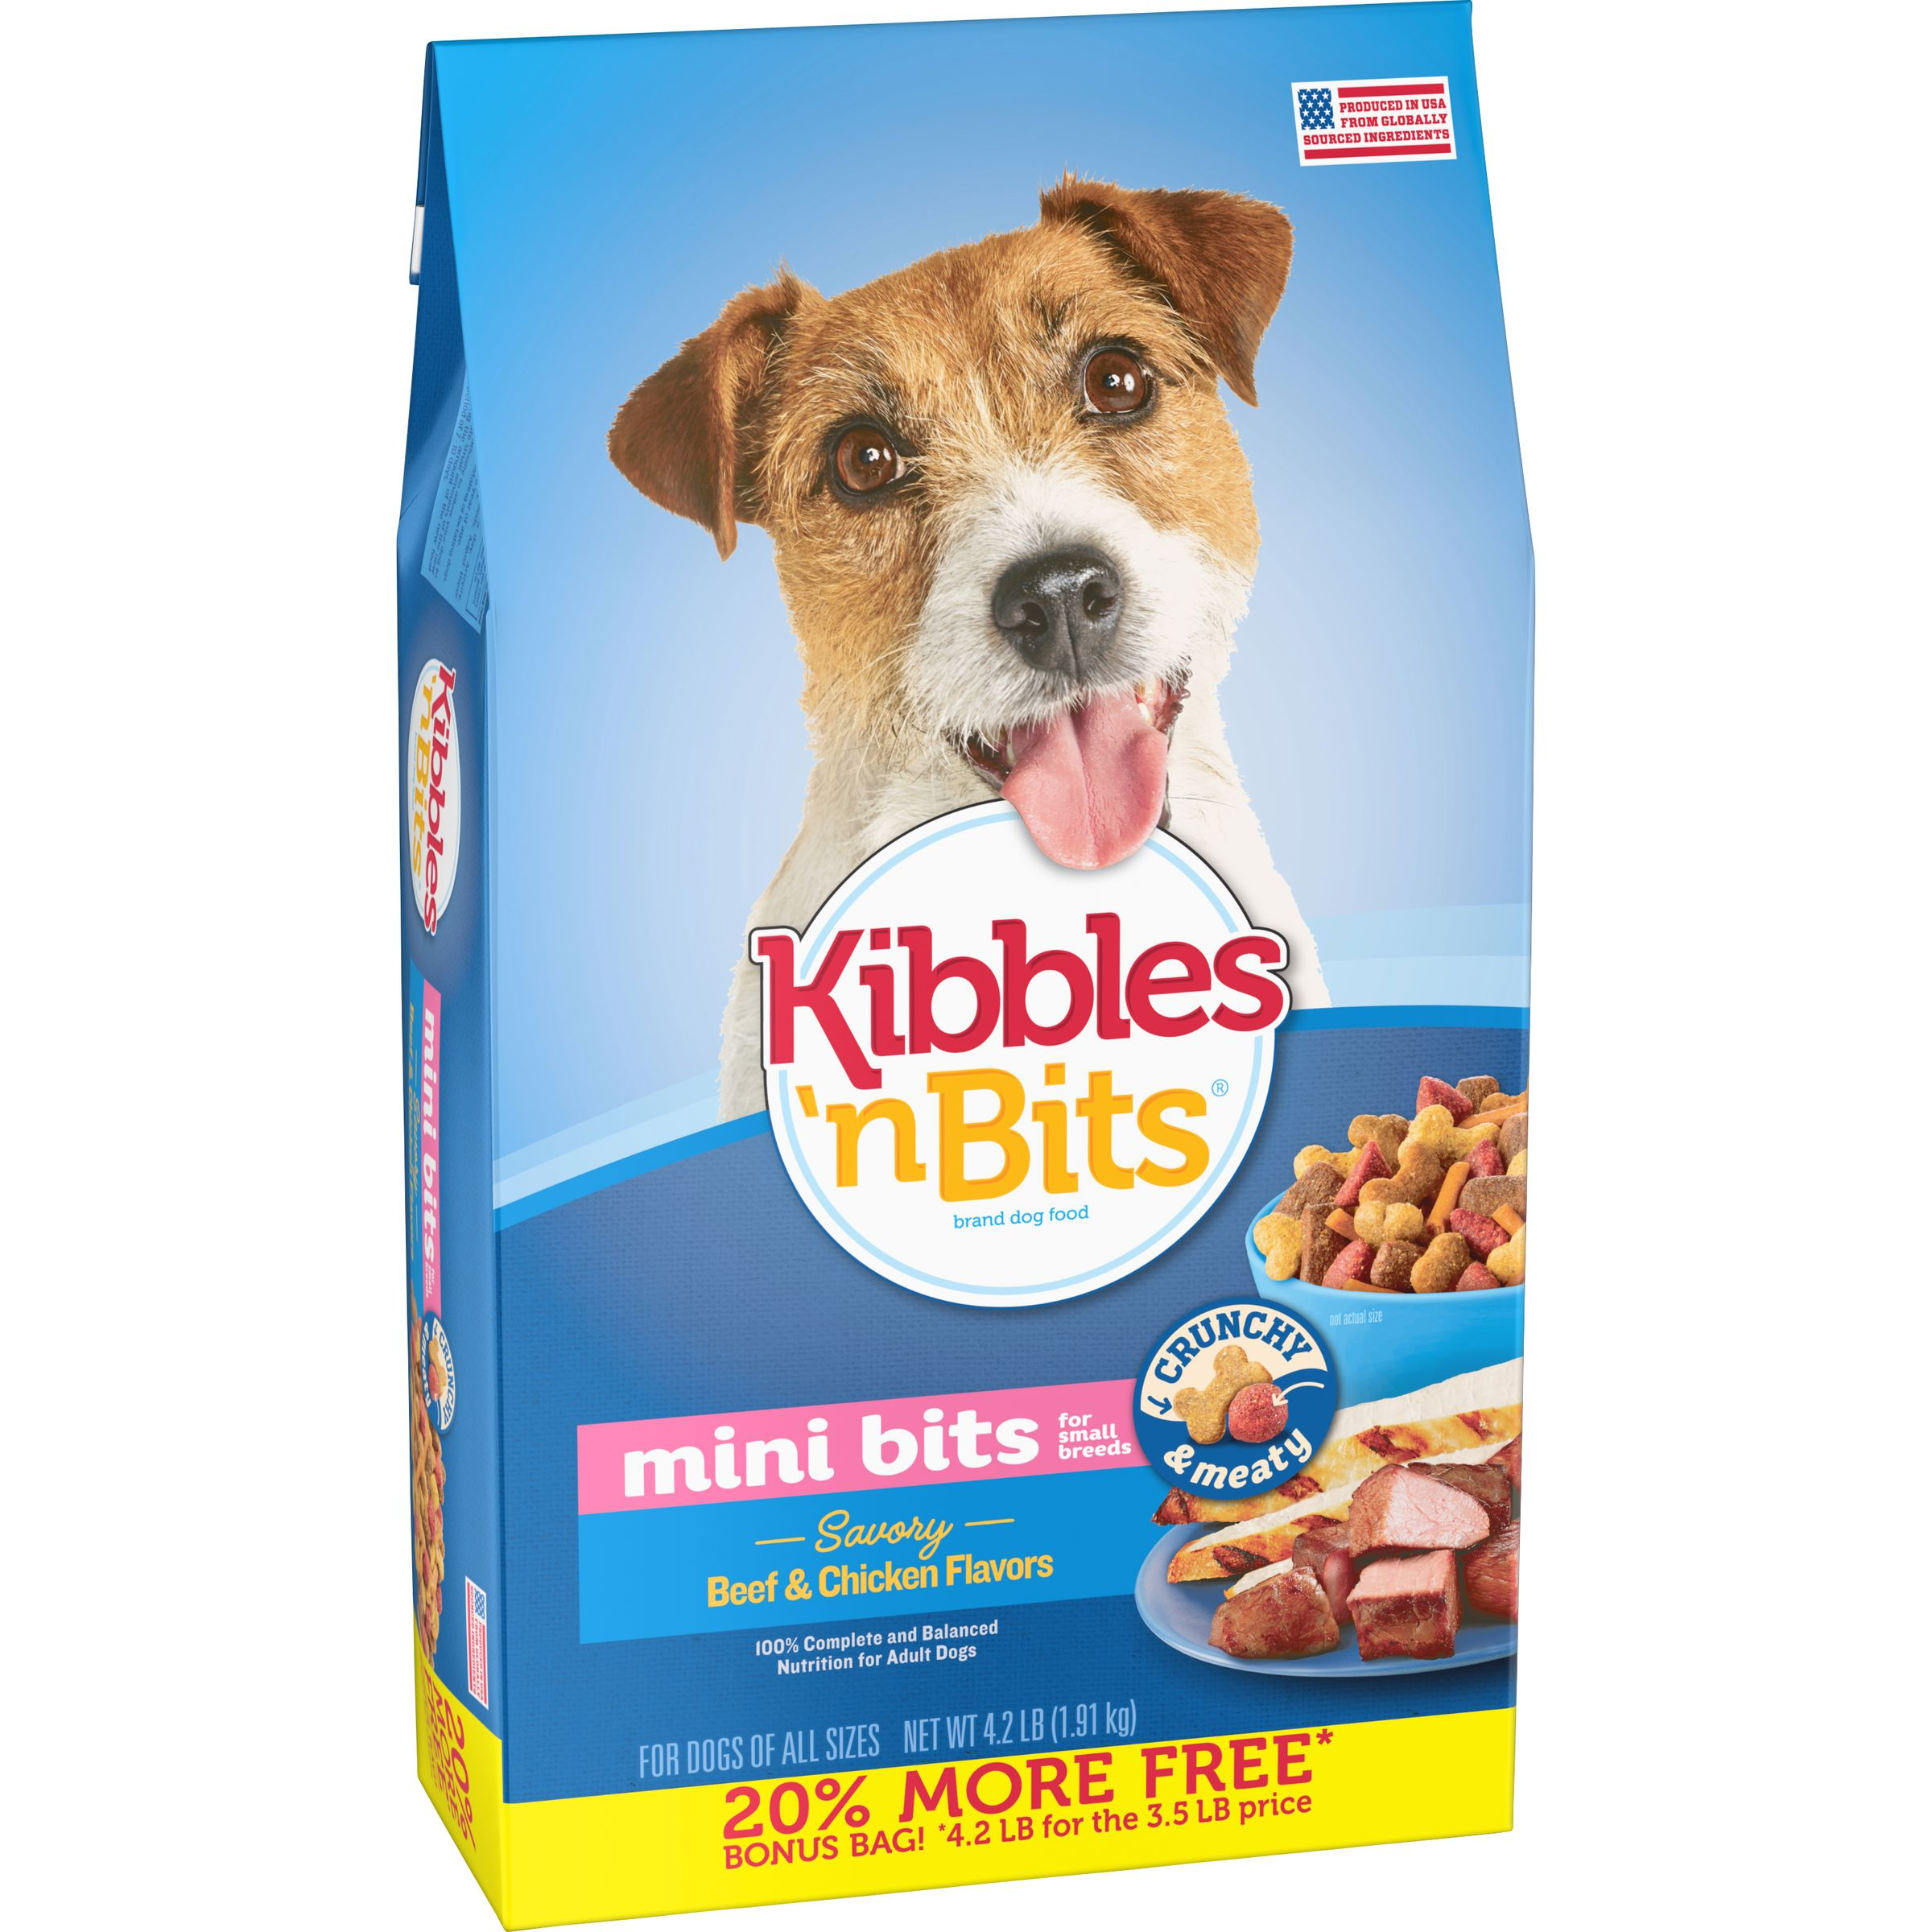 Kibbles 'n Bits Small Breed Mini Bits Savory Beef & Chicken Flavor Dog Food, 4.2-Pound by The J.M. Smucker Company